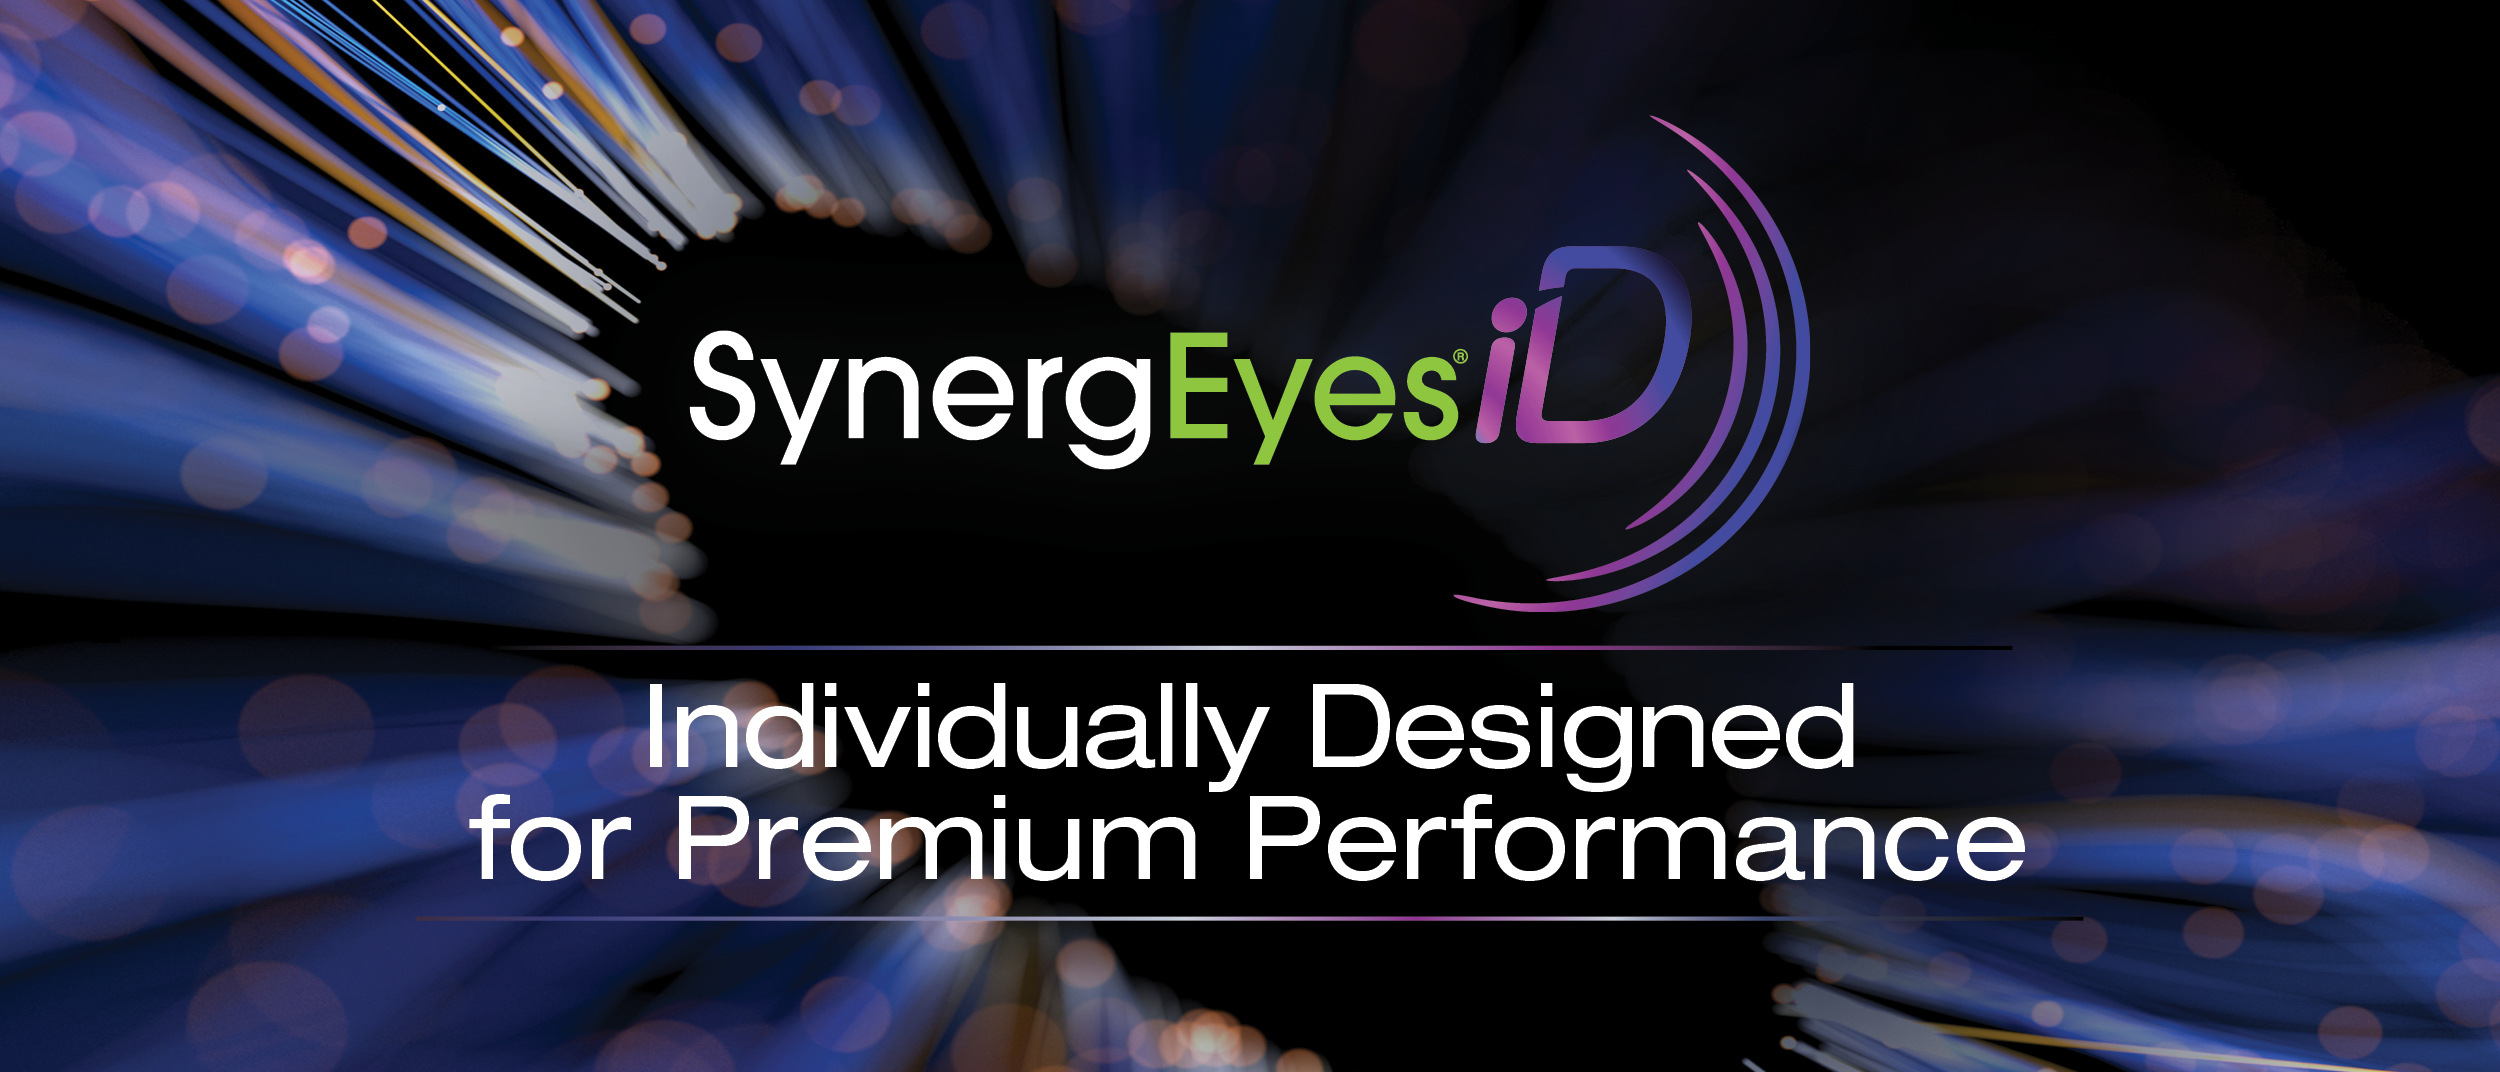 SynergEyes iD Webinar: The Next Generation in Personalized Hybrids